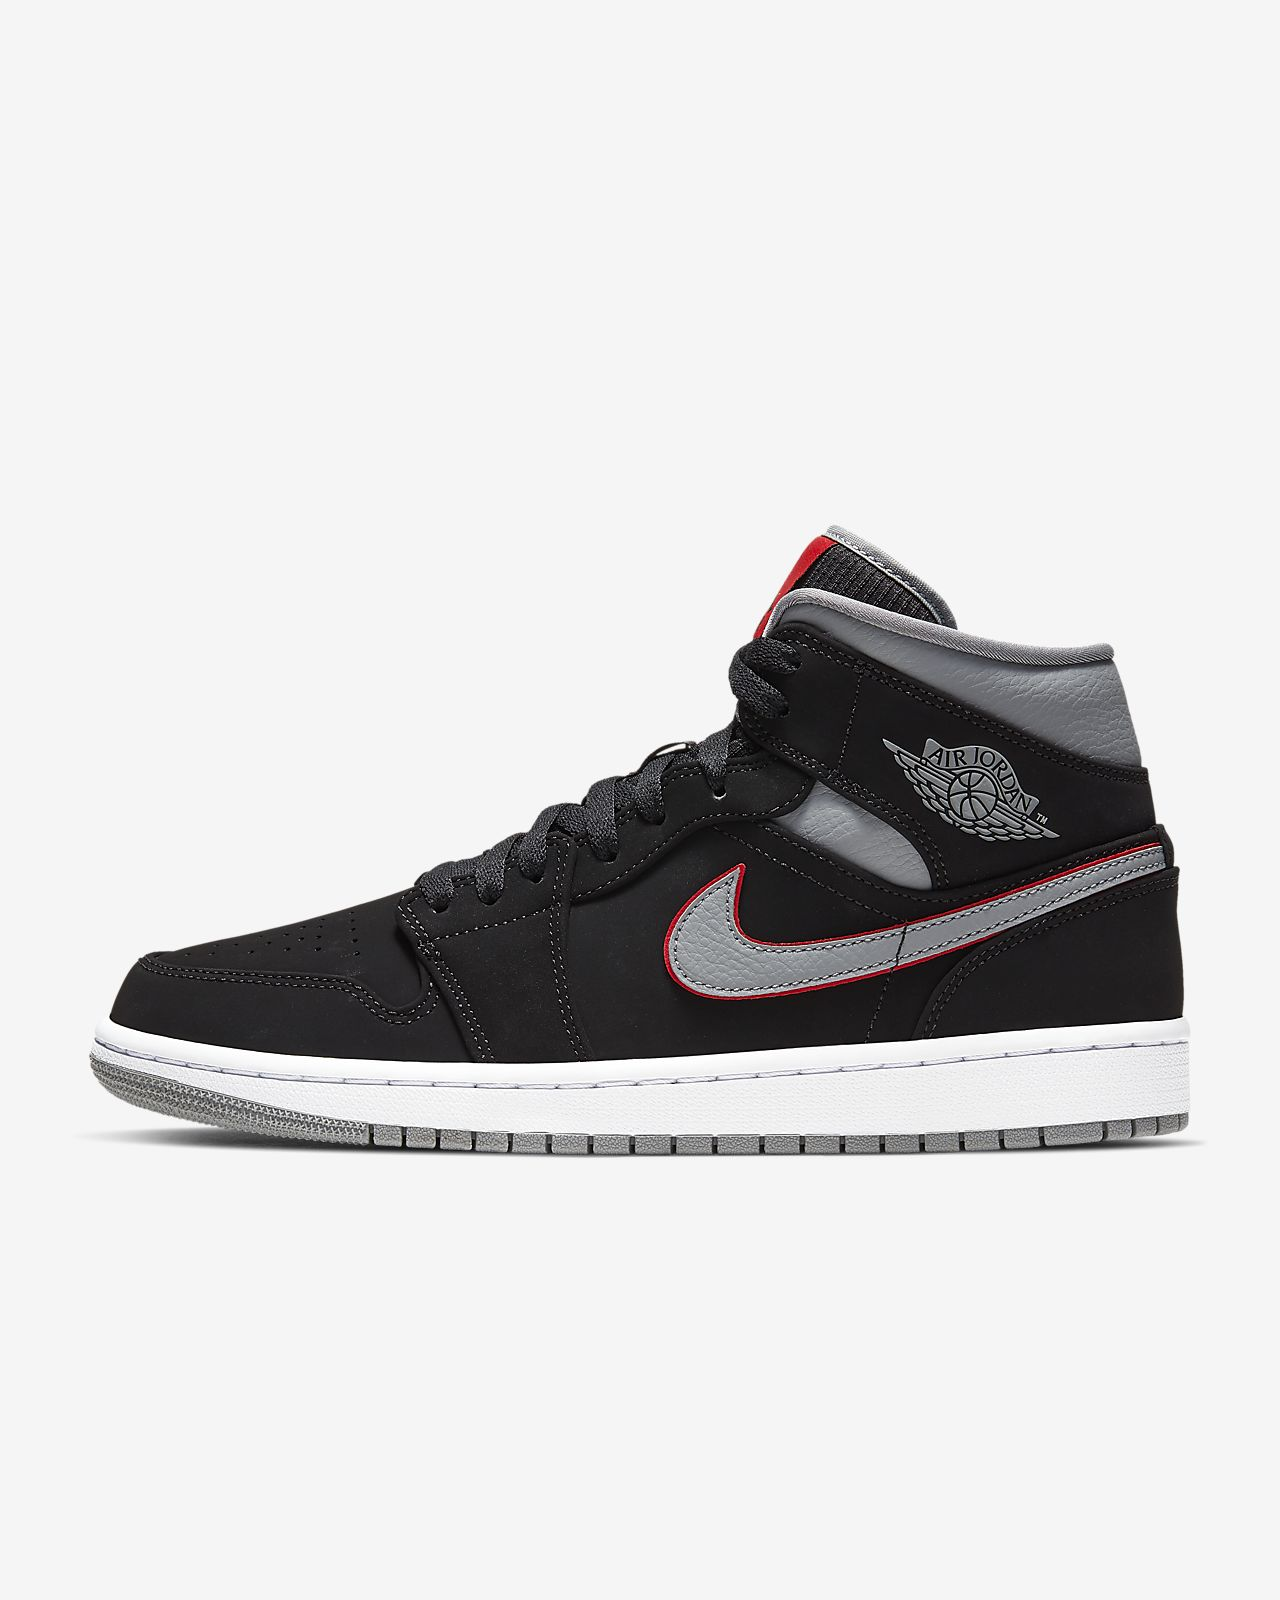 08b7cefb6231 Air Jordan 1 Mid Men s Shoe. Nike.com AU